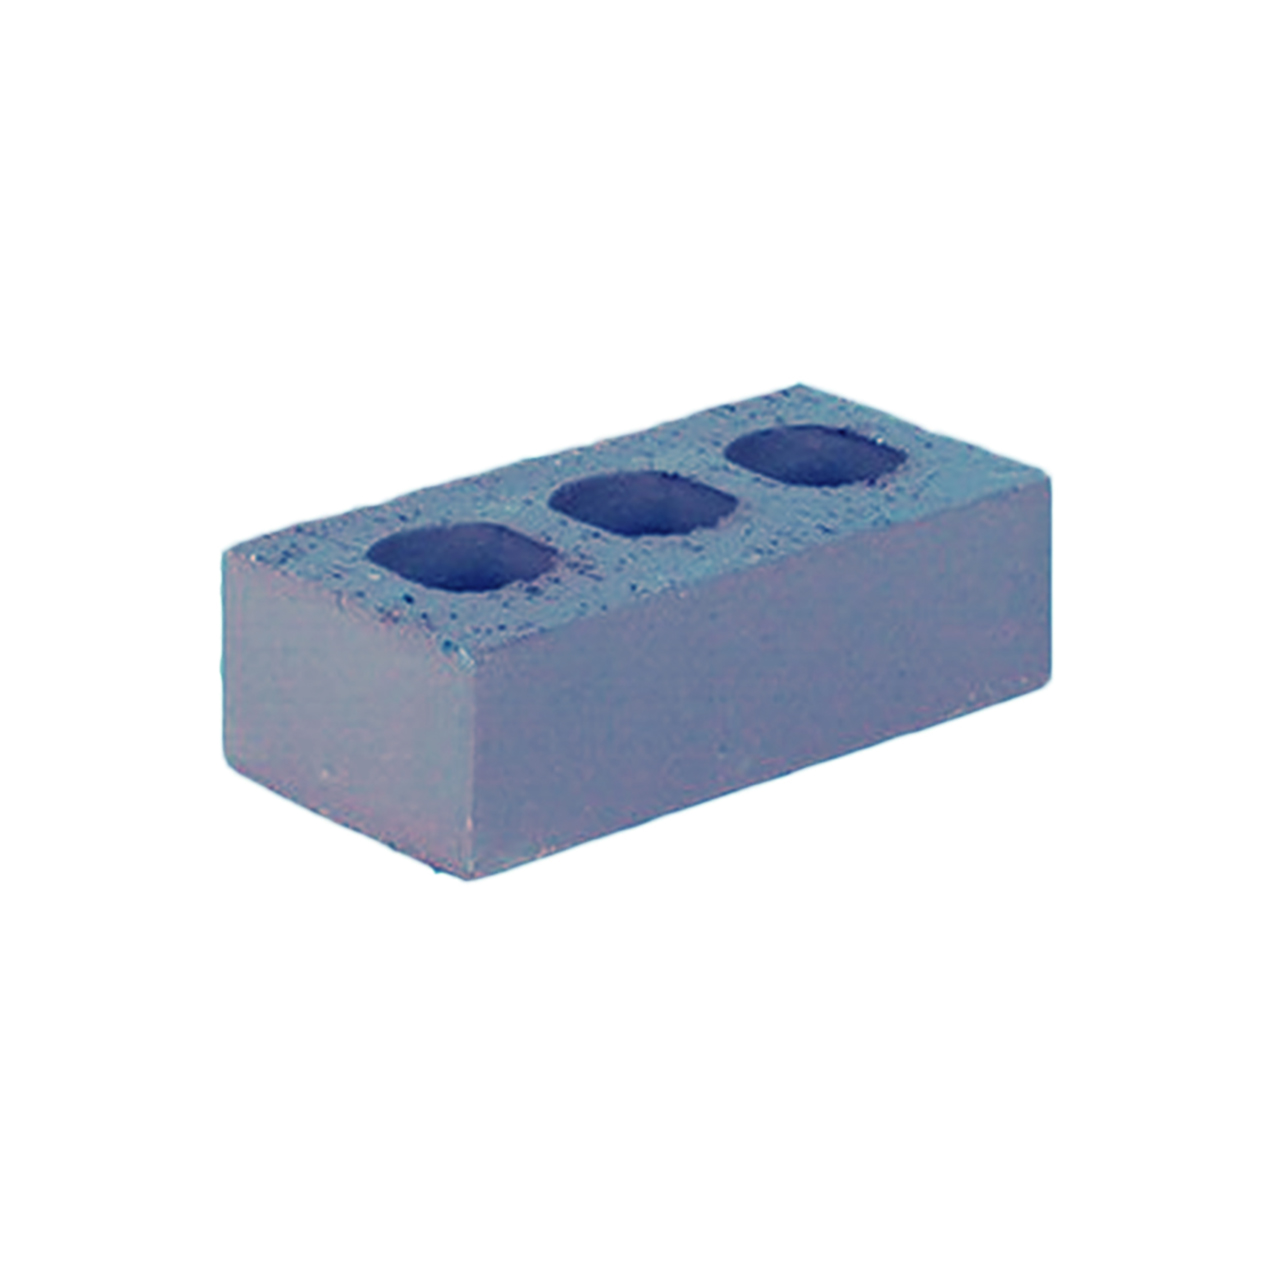 73mm Class B Blue Perforated Engineering Brick image 1